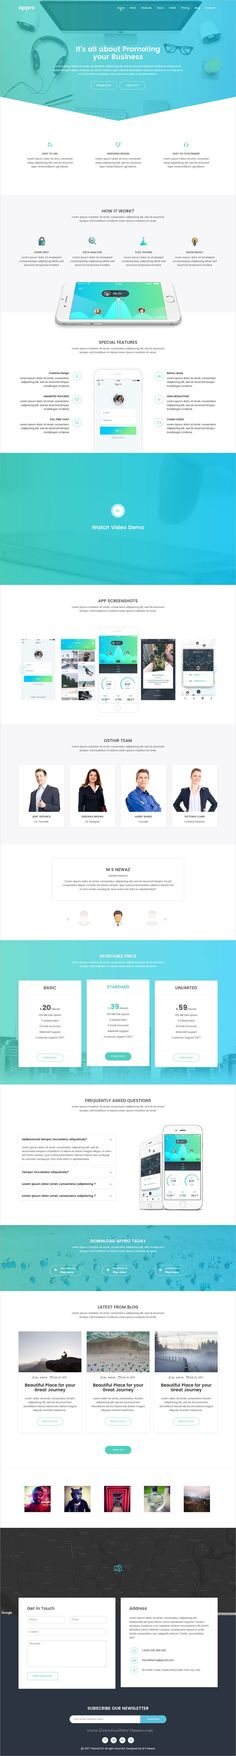 Appro is simple and clean design responsive #HTML bootstrap template for professional app #landing page website with 10+ homepage layouts download now➩ https://themeforest.net/item/appro-creative-app-landing-html5-template/19696258?ref=Datasata